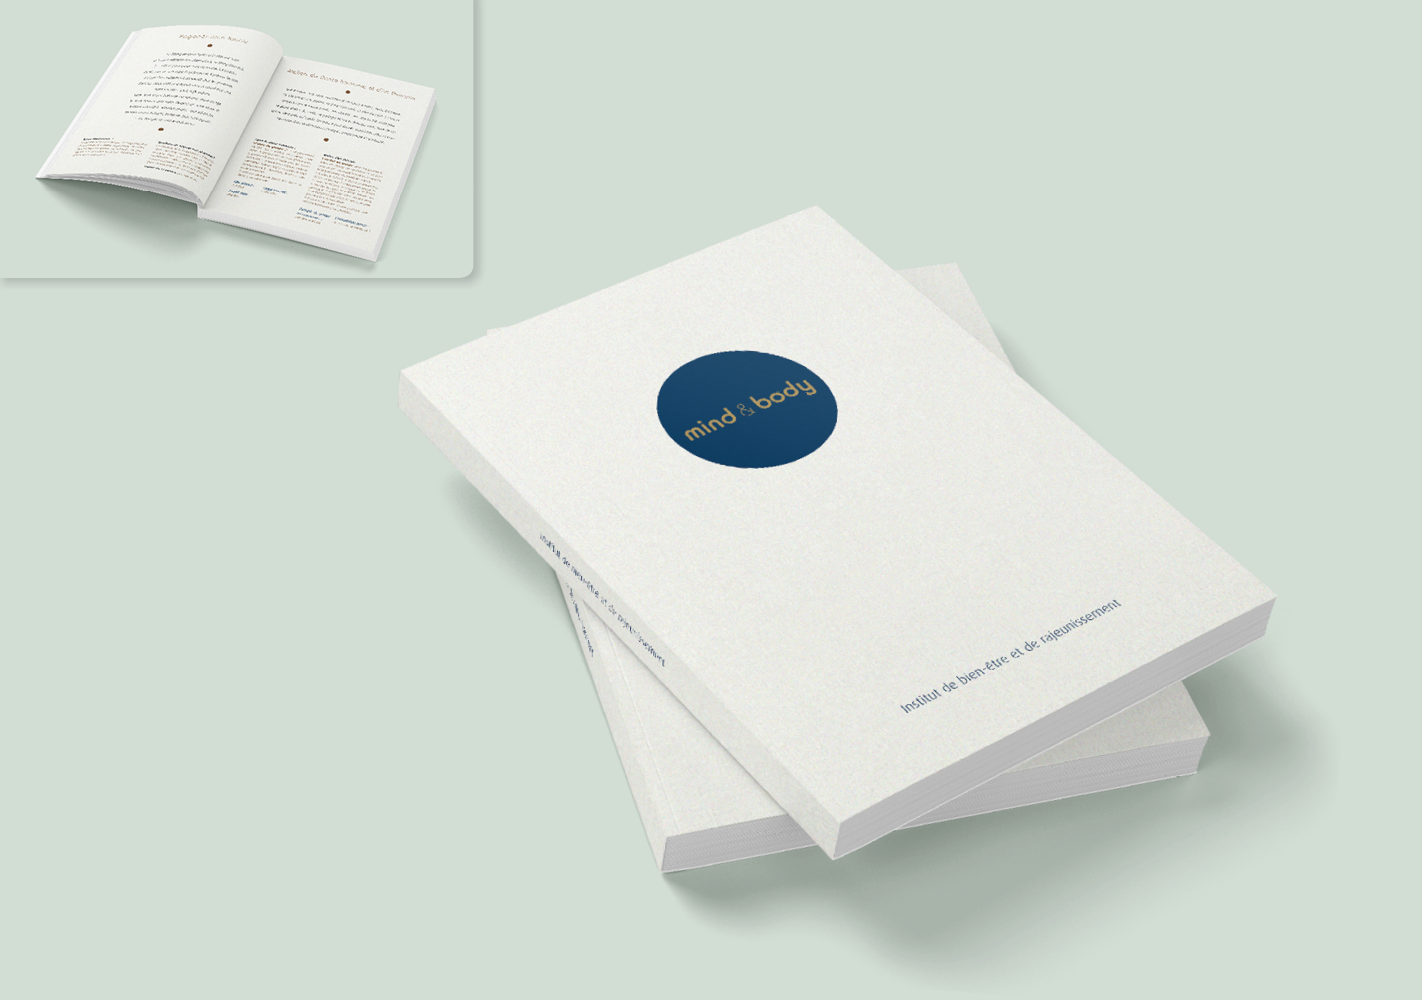 #Guide clients : Conception, exécution et impression #Customers guides : Design, execution and printing